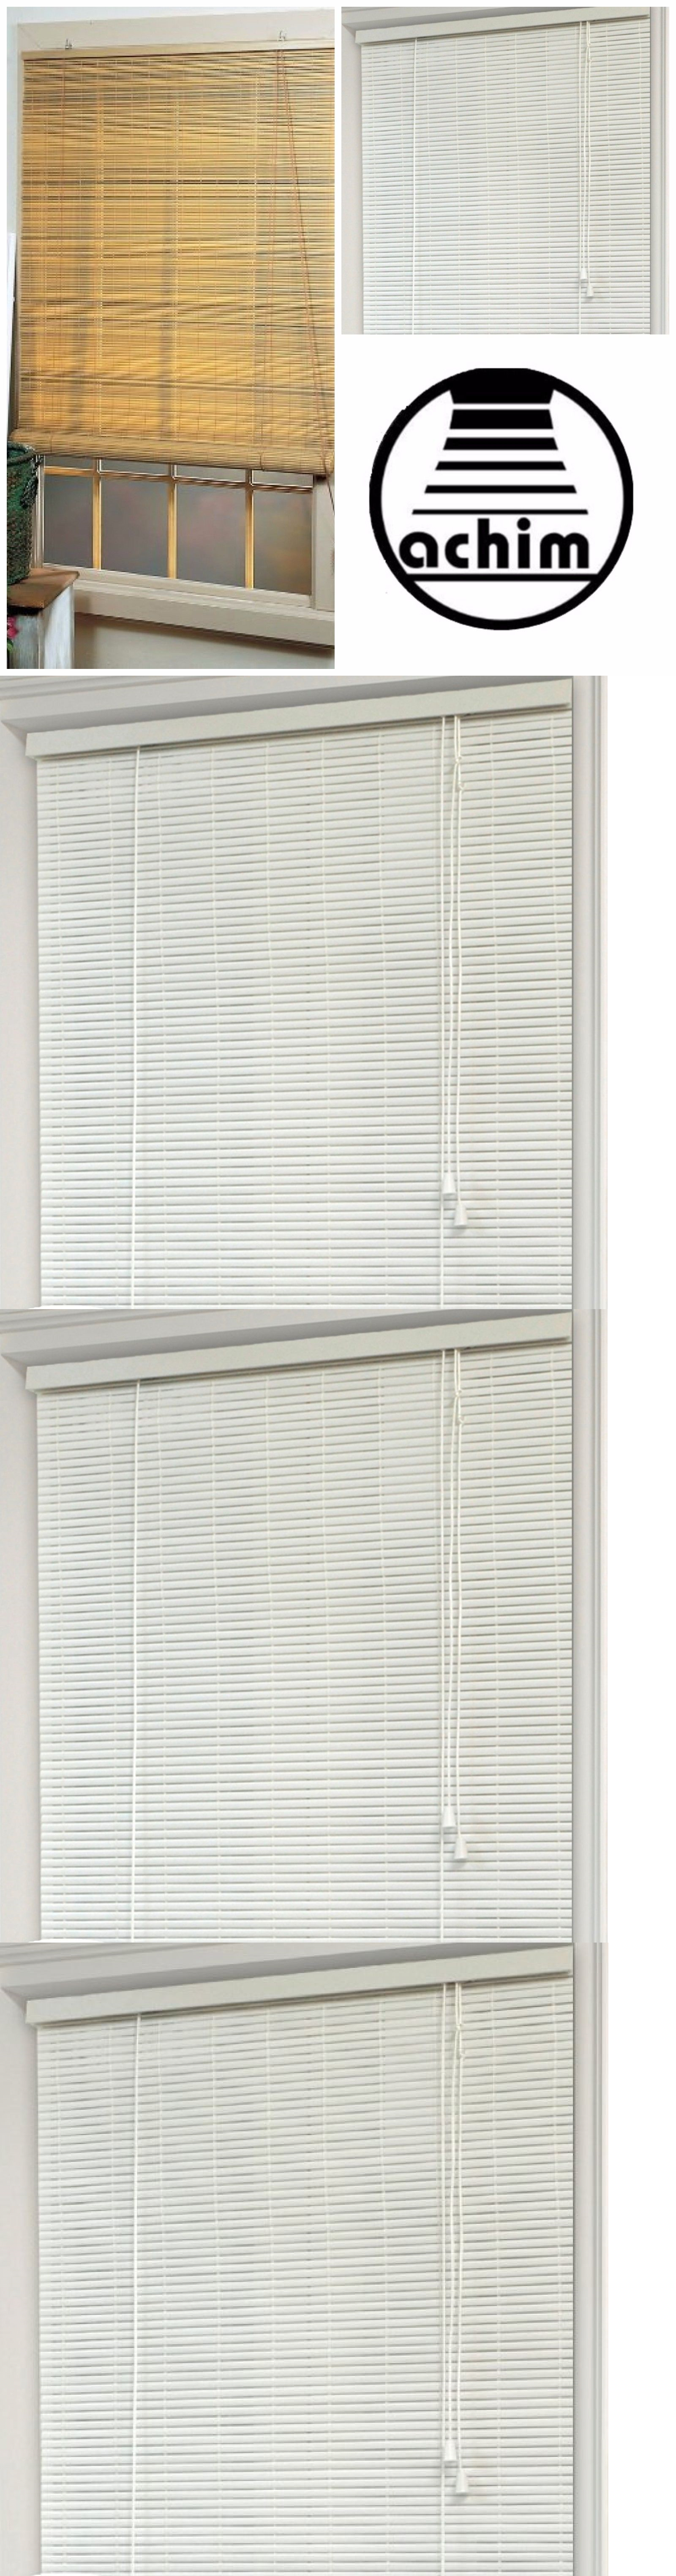 Blinds and shades roll up window blinds roller window shades